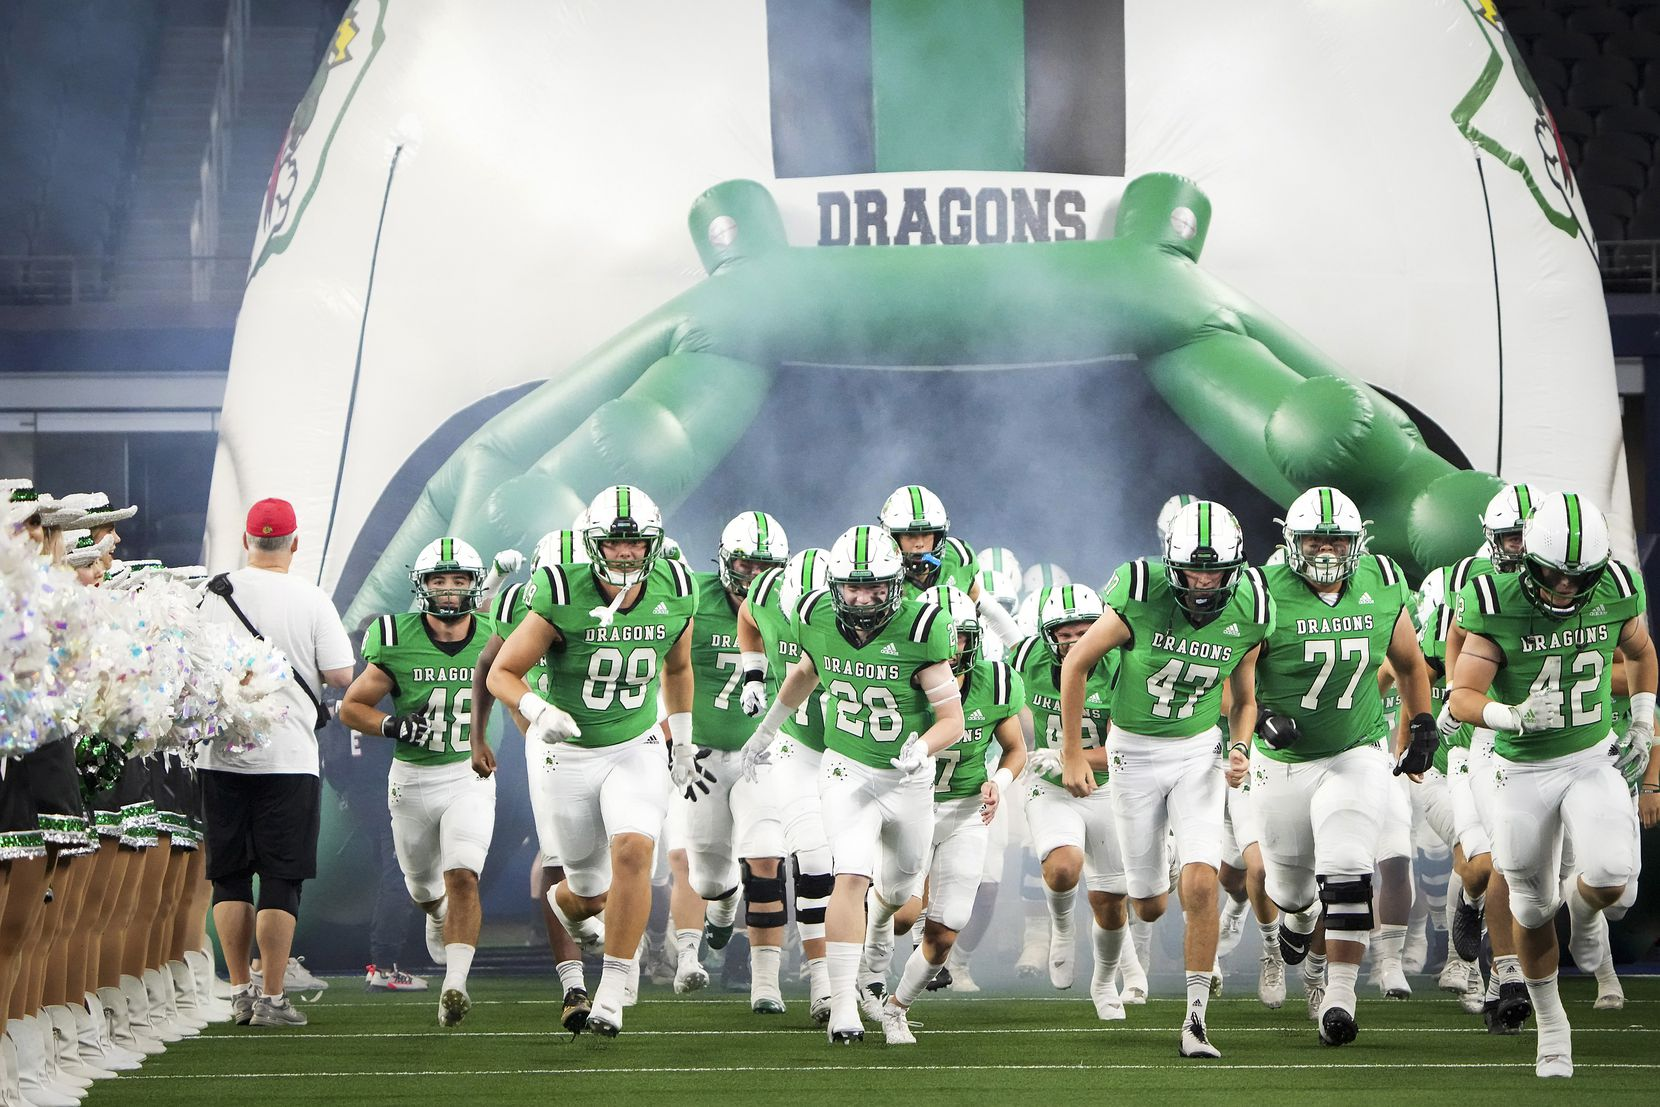 Southlake Carroll players take the field to face Highland Park in a high school football game at AT&T Stadium on Thursday, Aug. 26, 2021, in Arlington.